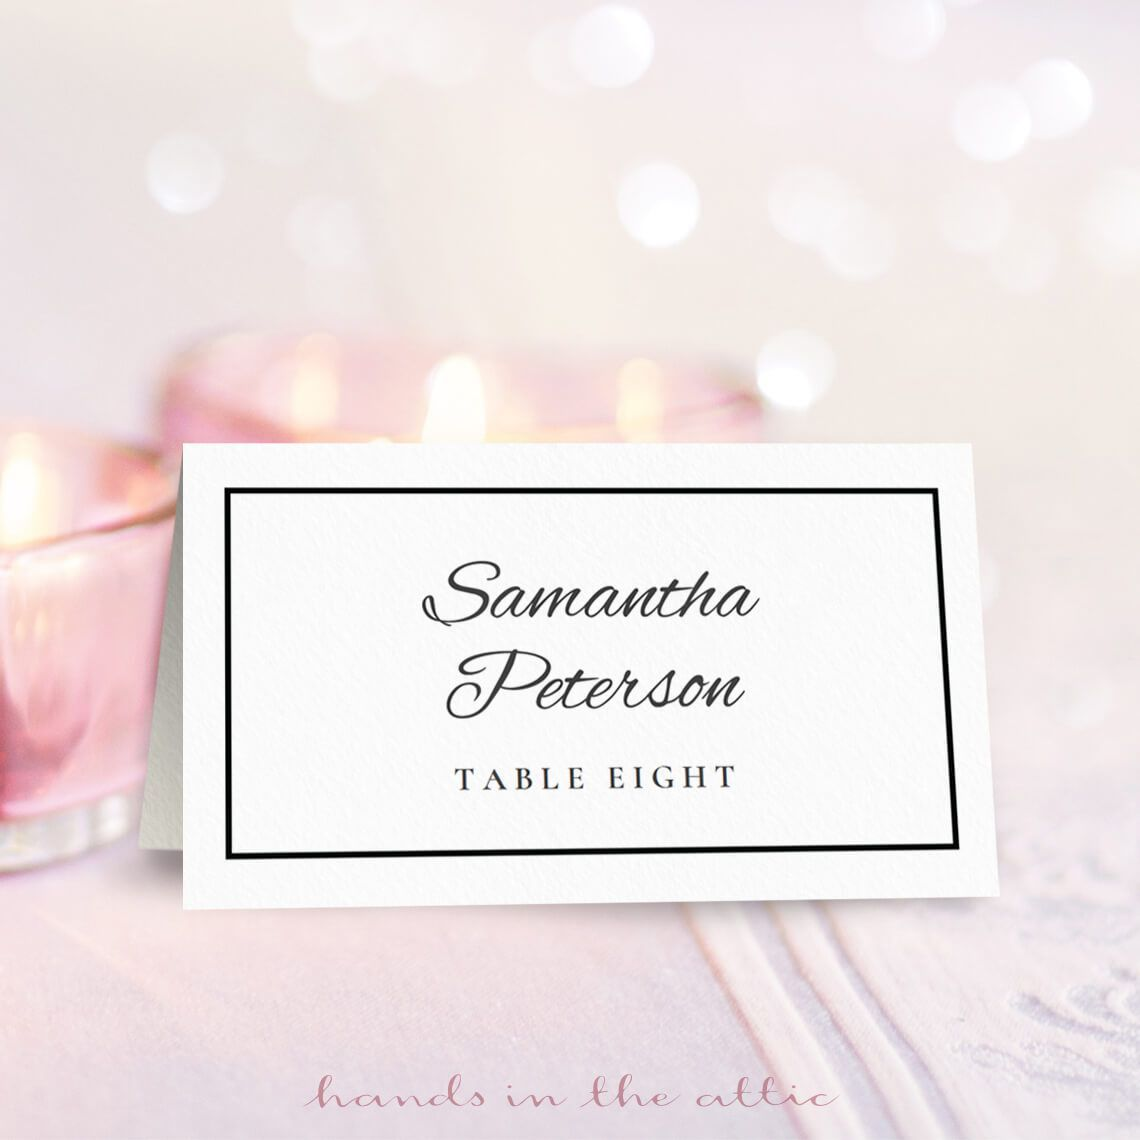 8 Free Wedding Place Card Templates Intended For Microsoft Word Place Card Template In 2020 Free Place Card Template Card Templates Printable Place Card Template